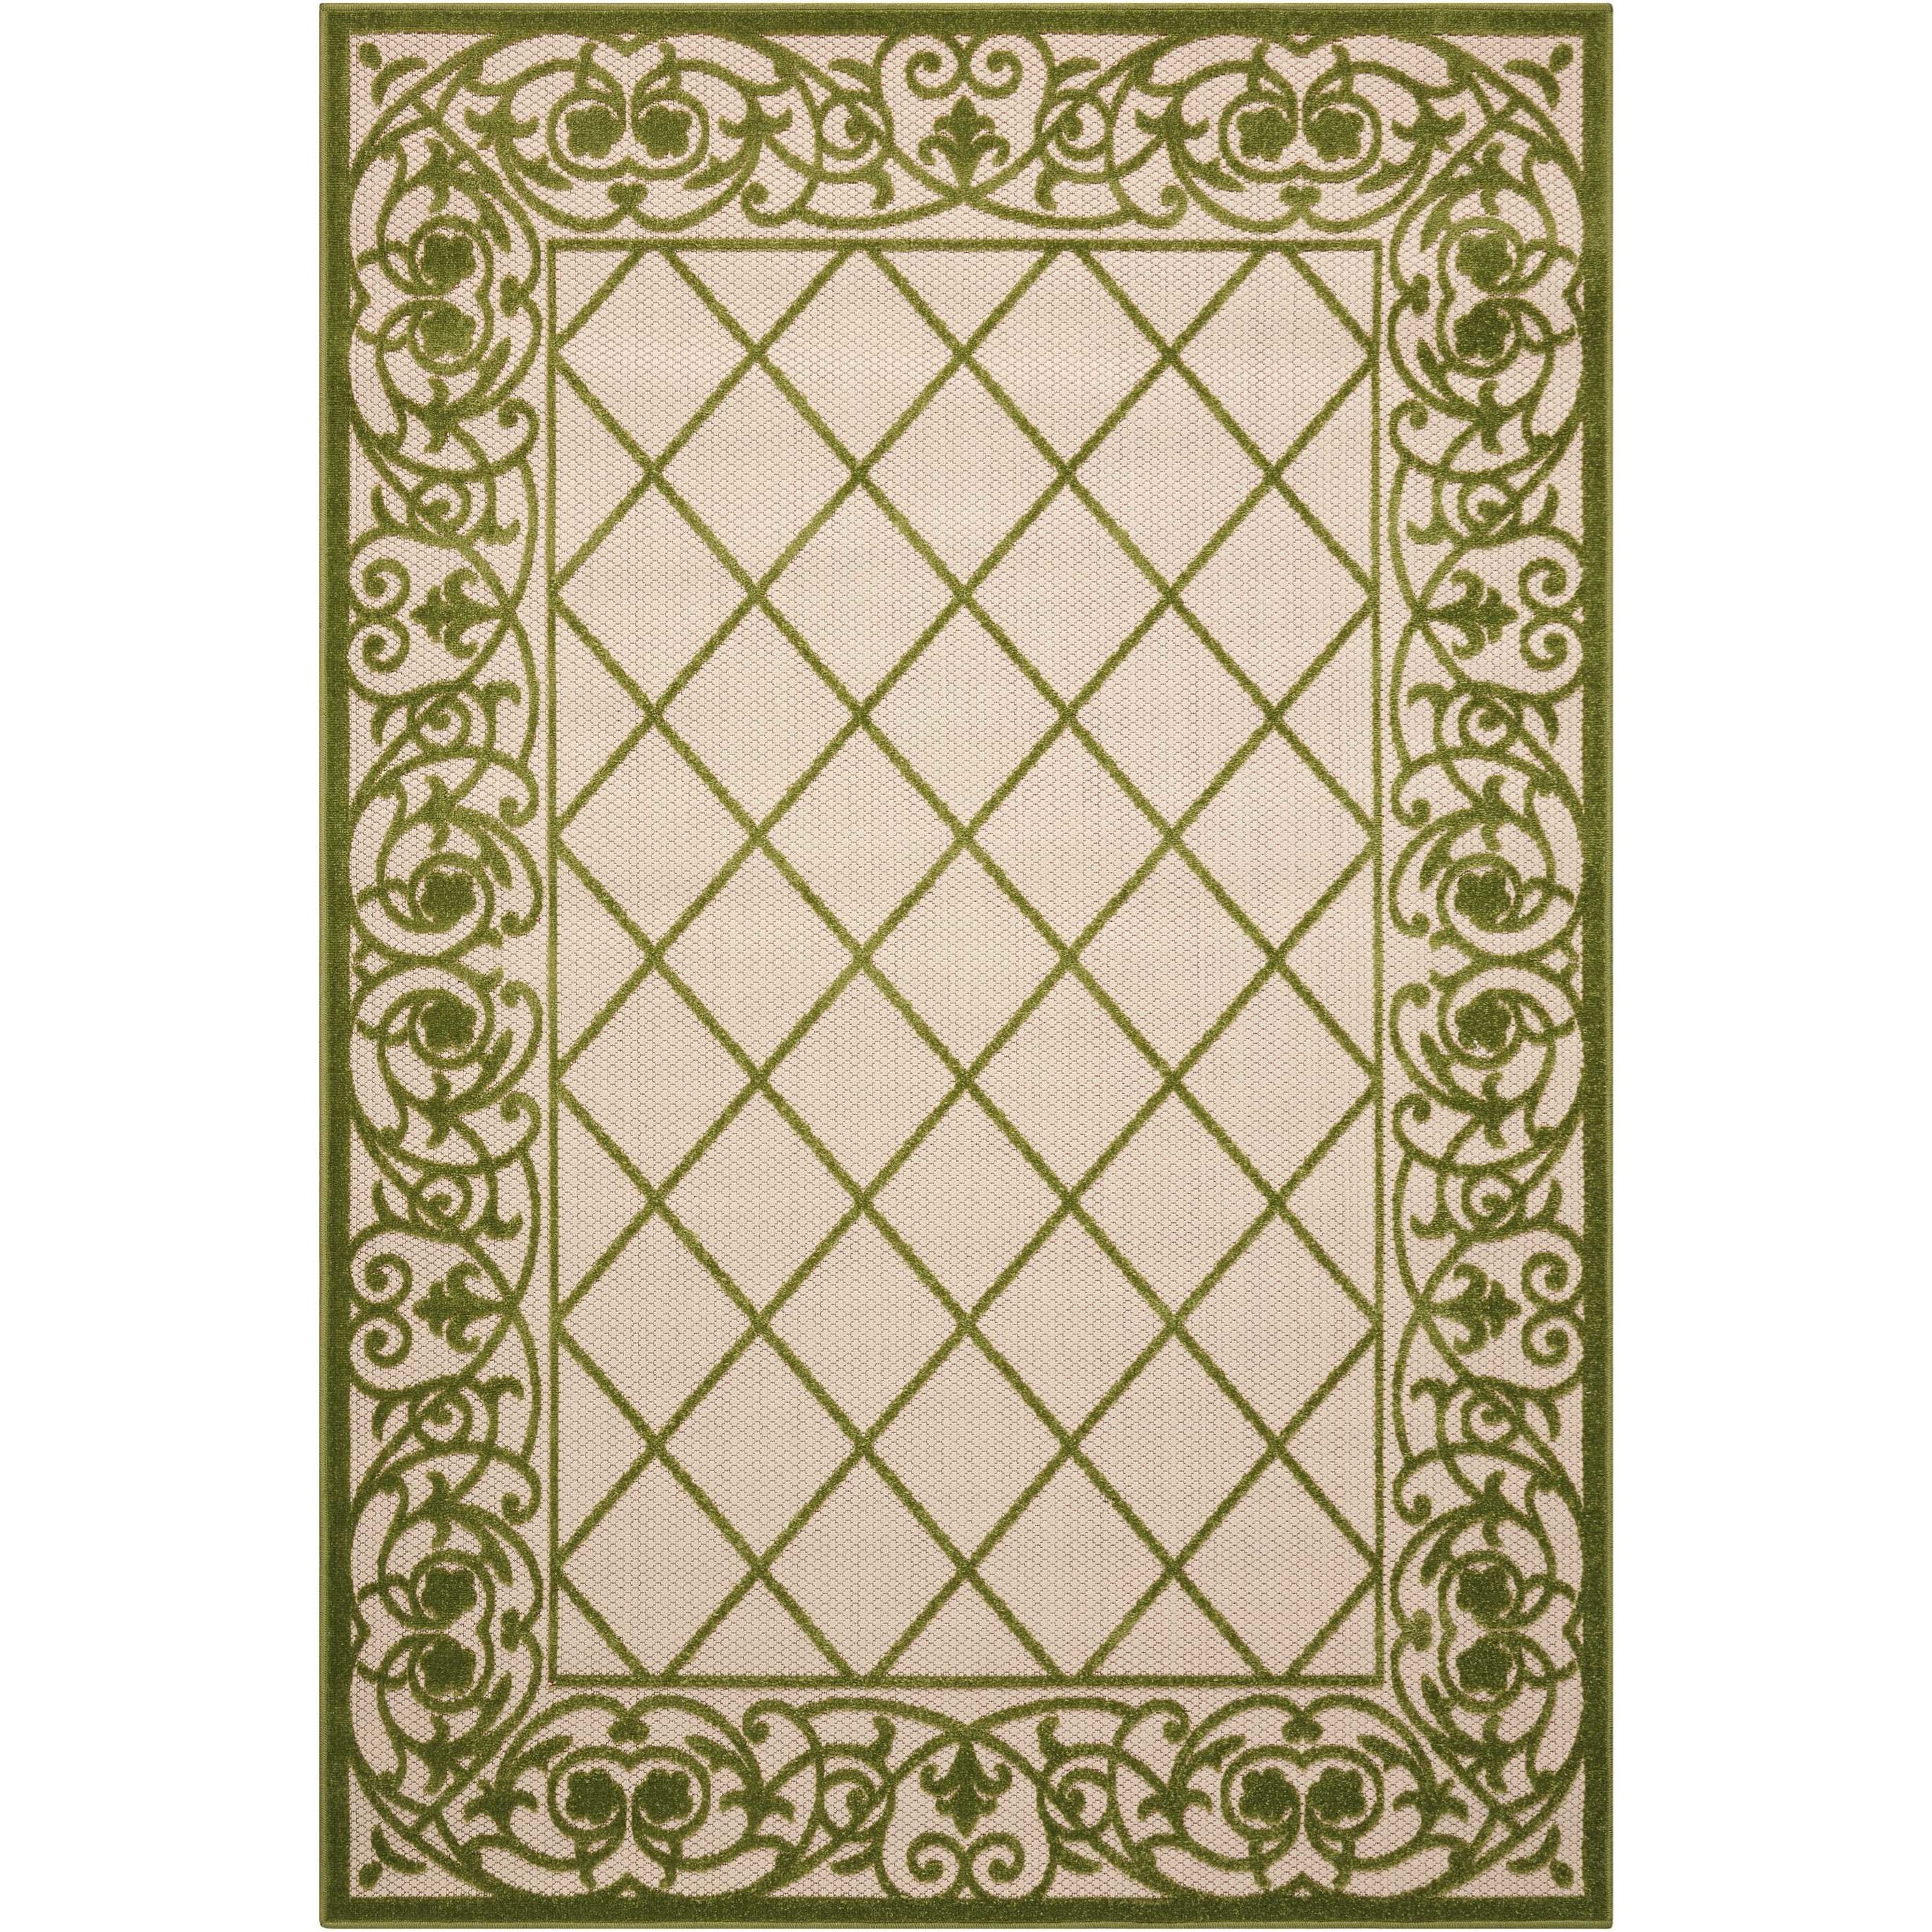 "Aloha 3'6"" X 5'6"" Green Rug by Nourison at Home Collections Furniture"